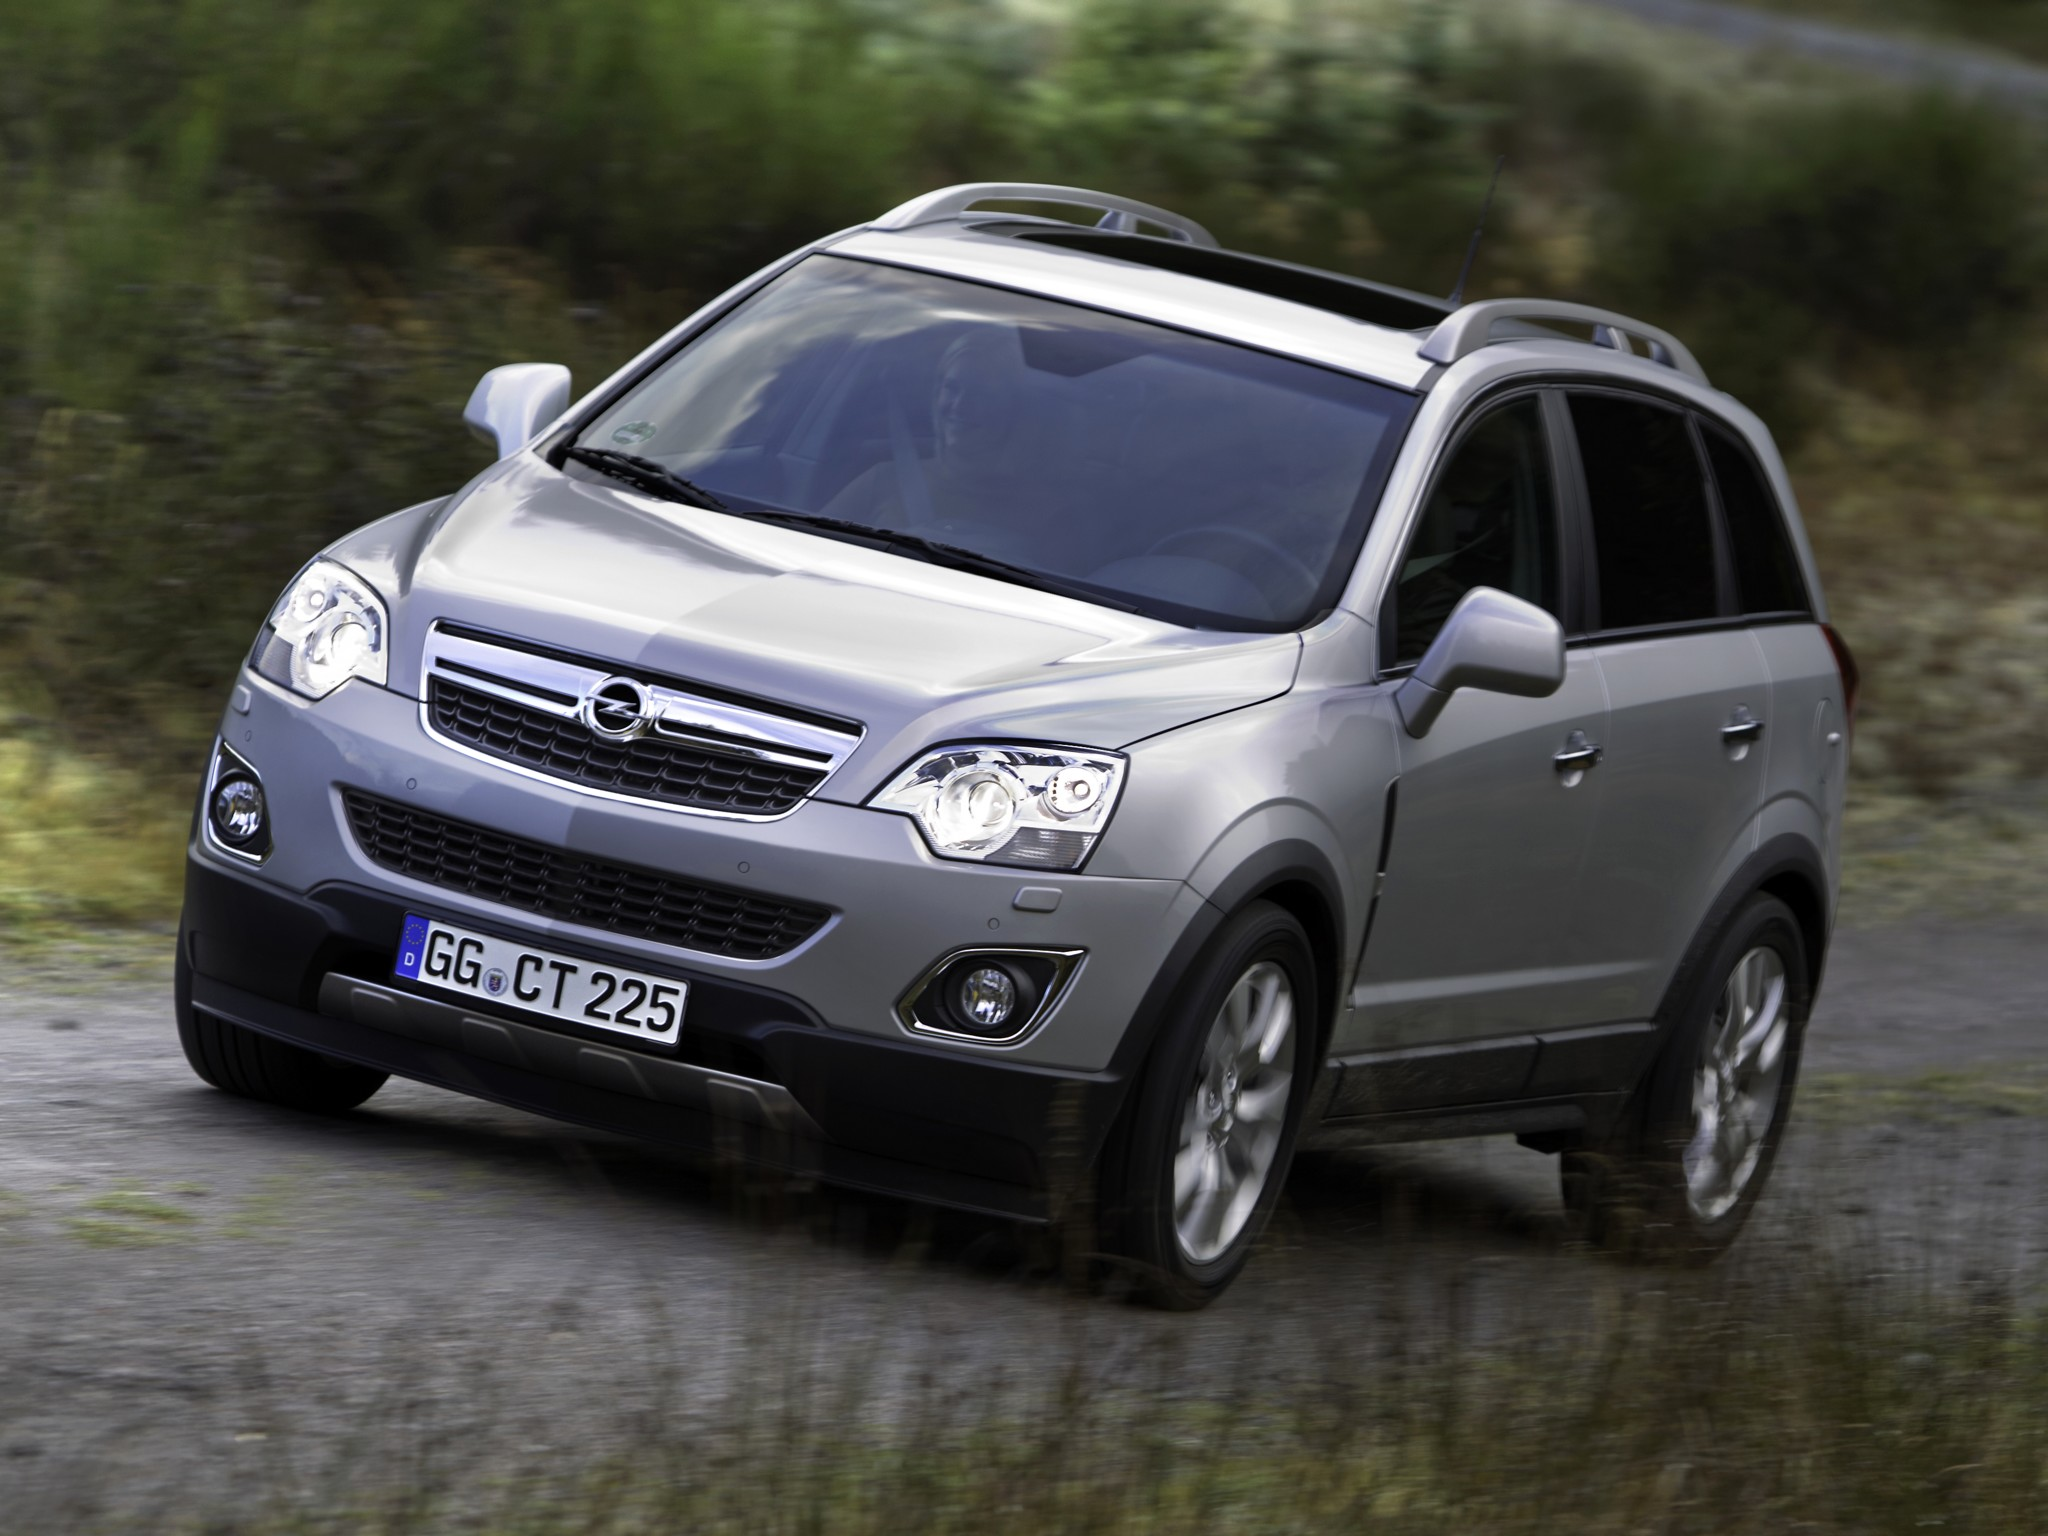 opel antara specs photos 2010 2011 2012 2013 2014 2015 2016 2017 autoevolution. Black Bedroom Furniture Sets. Home Design Ideas